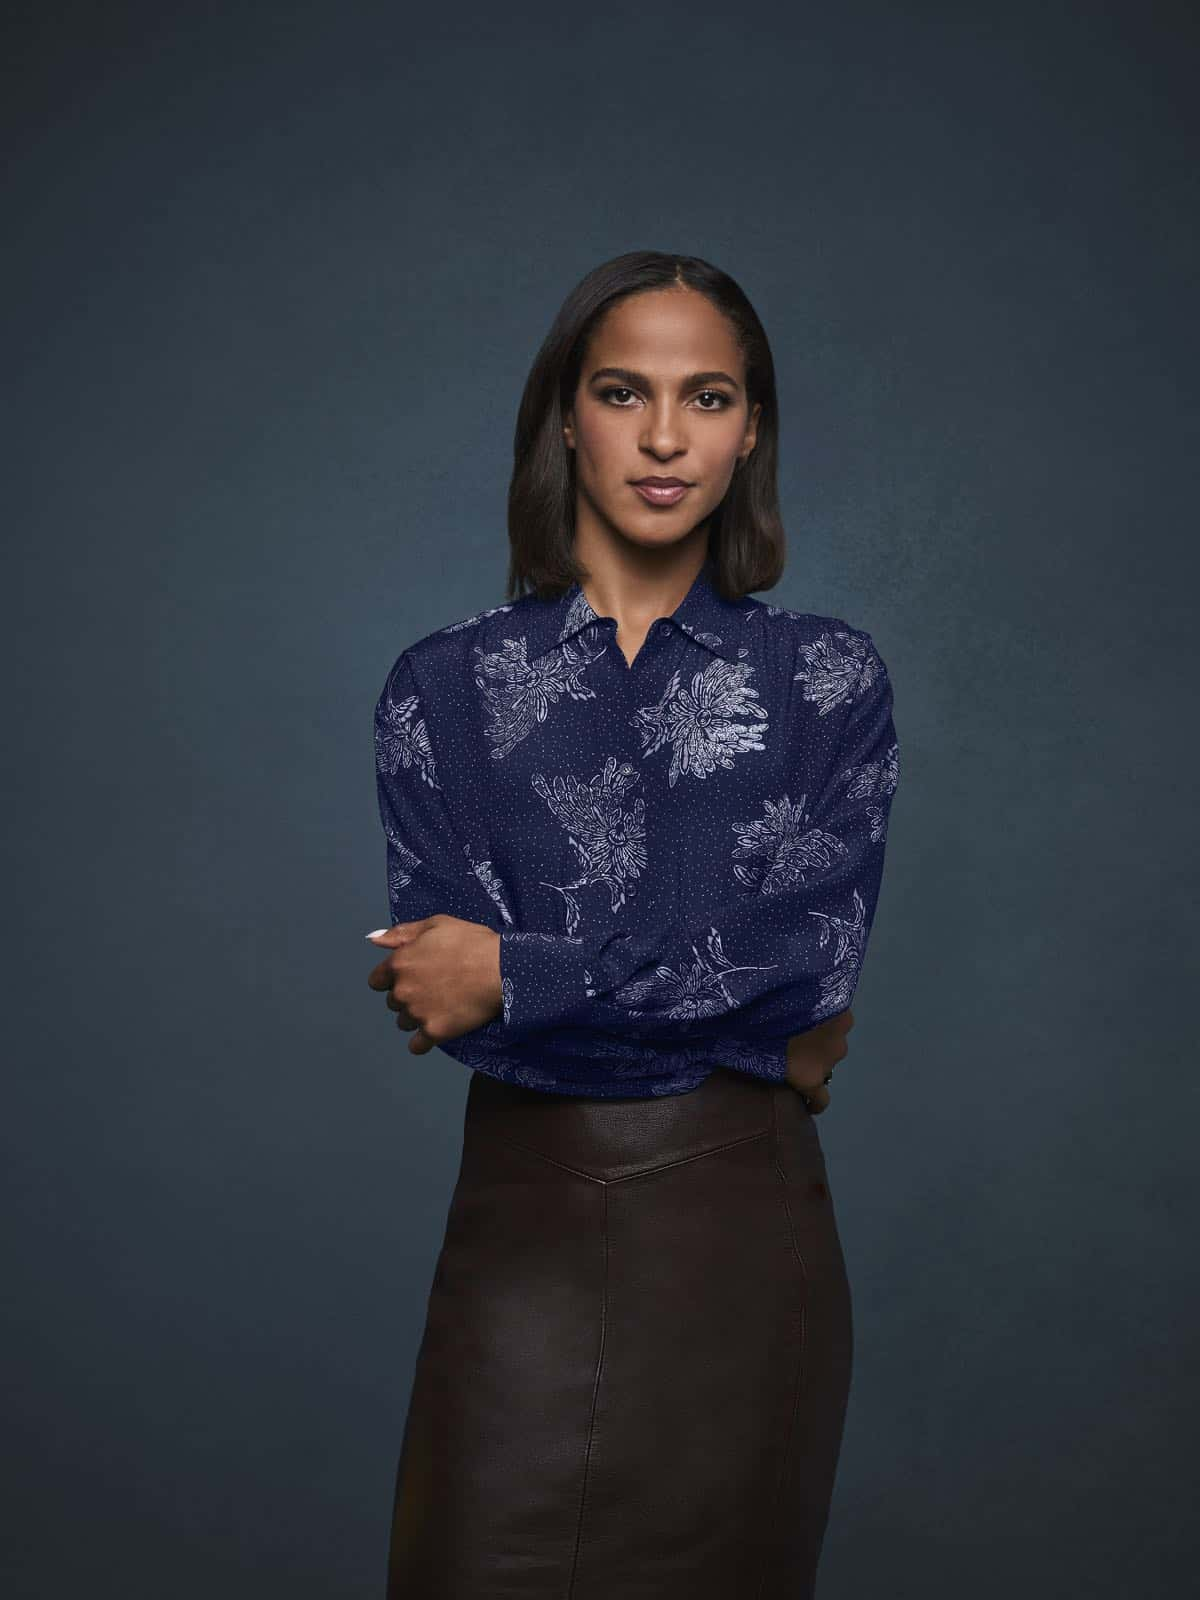 ALMOST FAMILY: Megalyn Echikunwoke as Edie Palmer in Season 1 of ALMOST FAMILY premiering Wednesday, October 2 (9:00-10:00pm PM ET/PT) on FOX. ©2019 Fox Broadcasting Co. All Rights Reserved. CR: Elisabeth Caren/FOX.